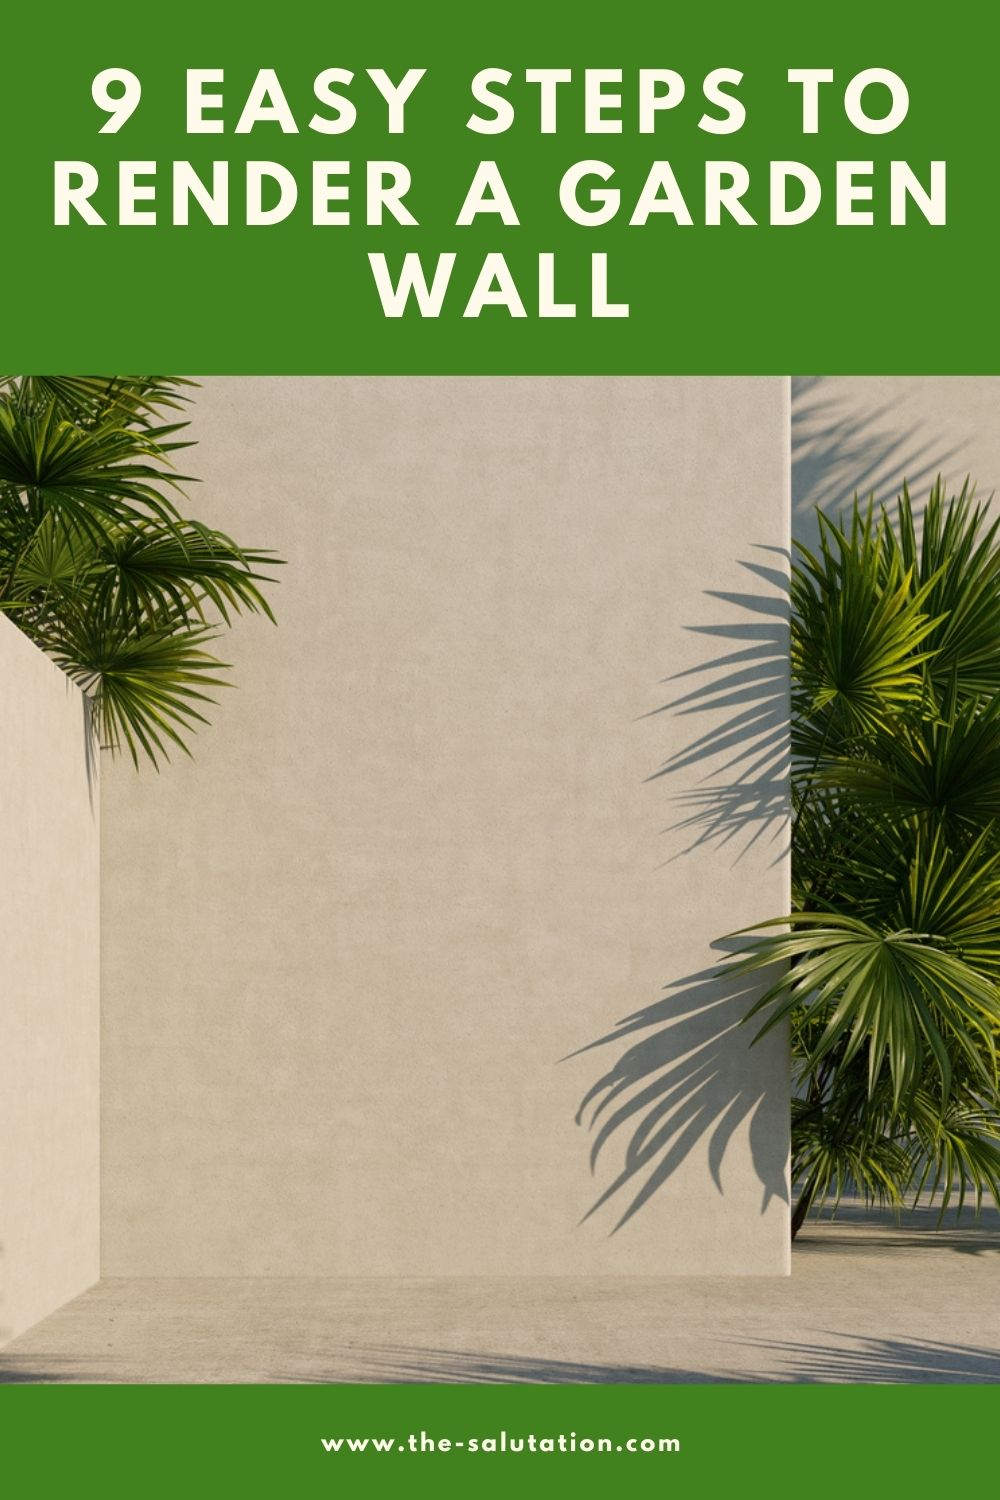 9 Easy Steps to Render a Garden Wall 1